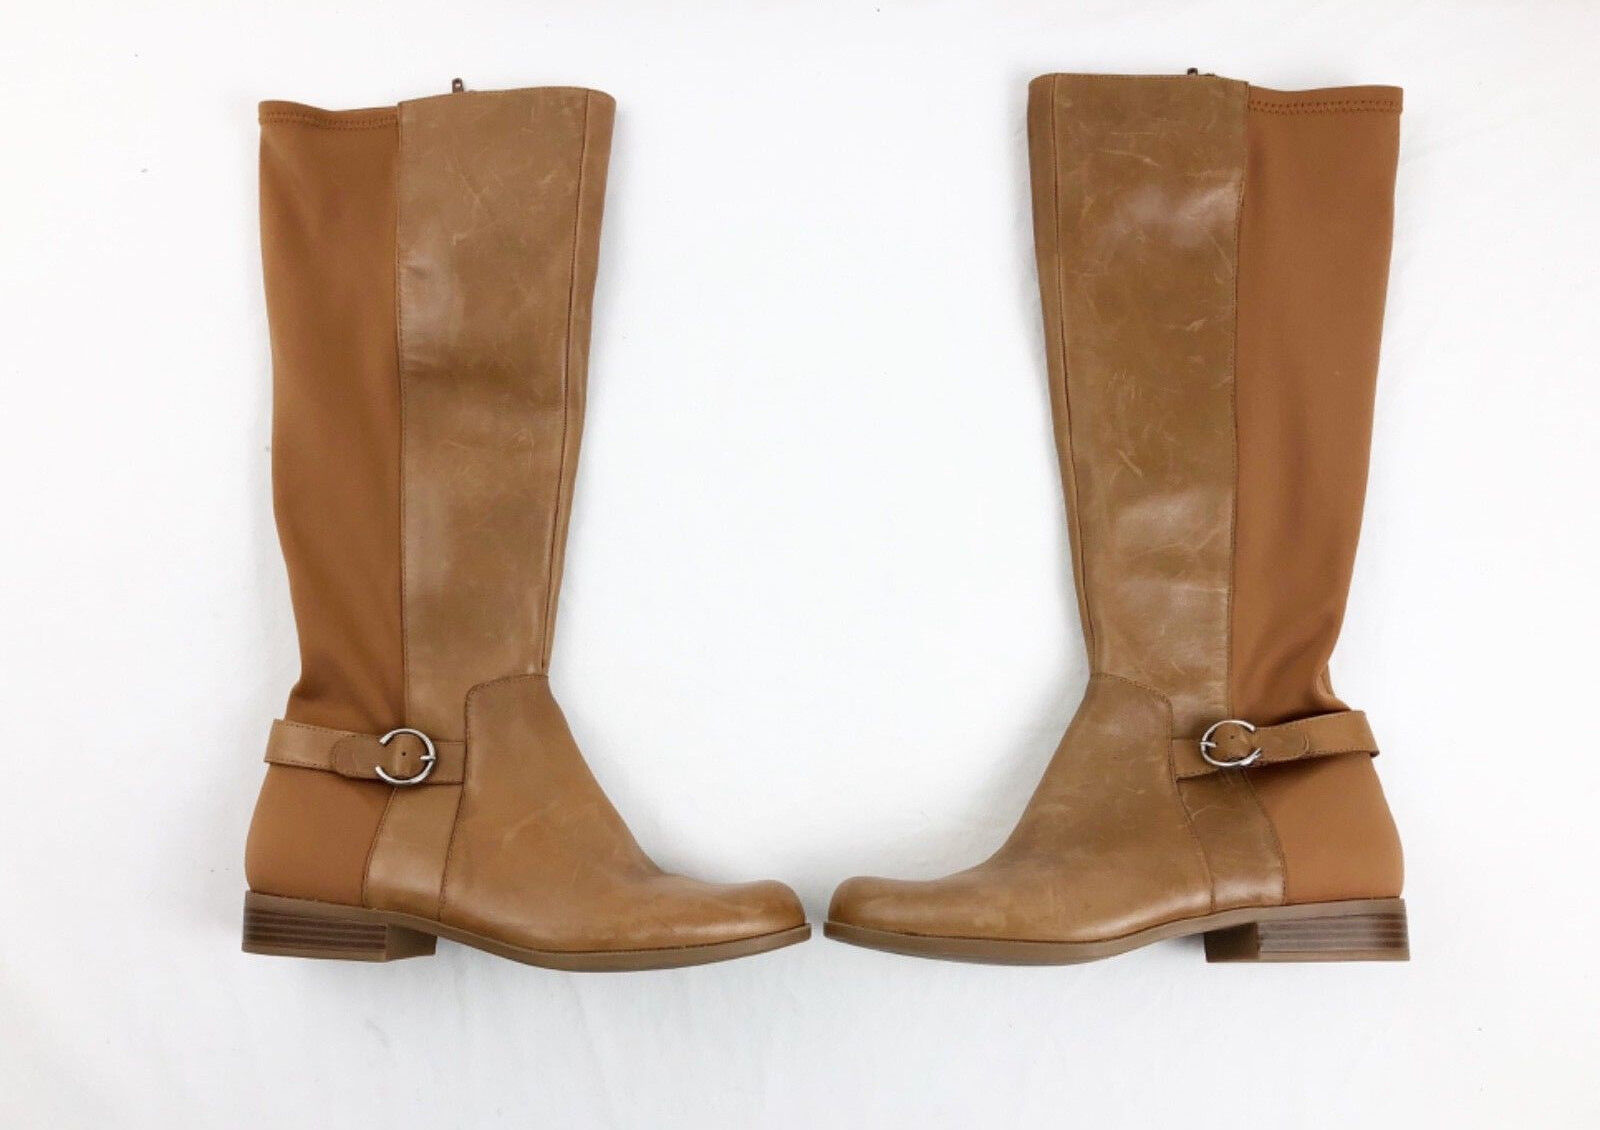 Nine West Stiefel 9.5 Tan Leather Riding